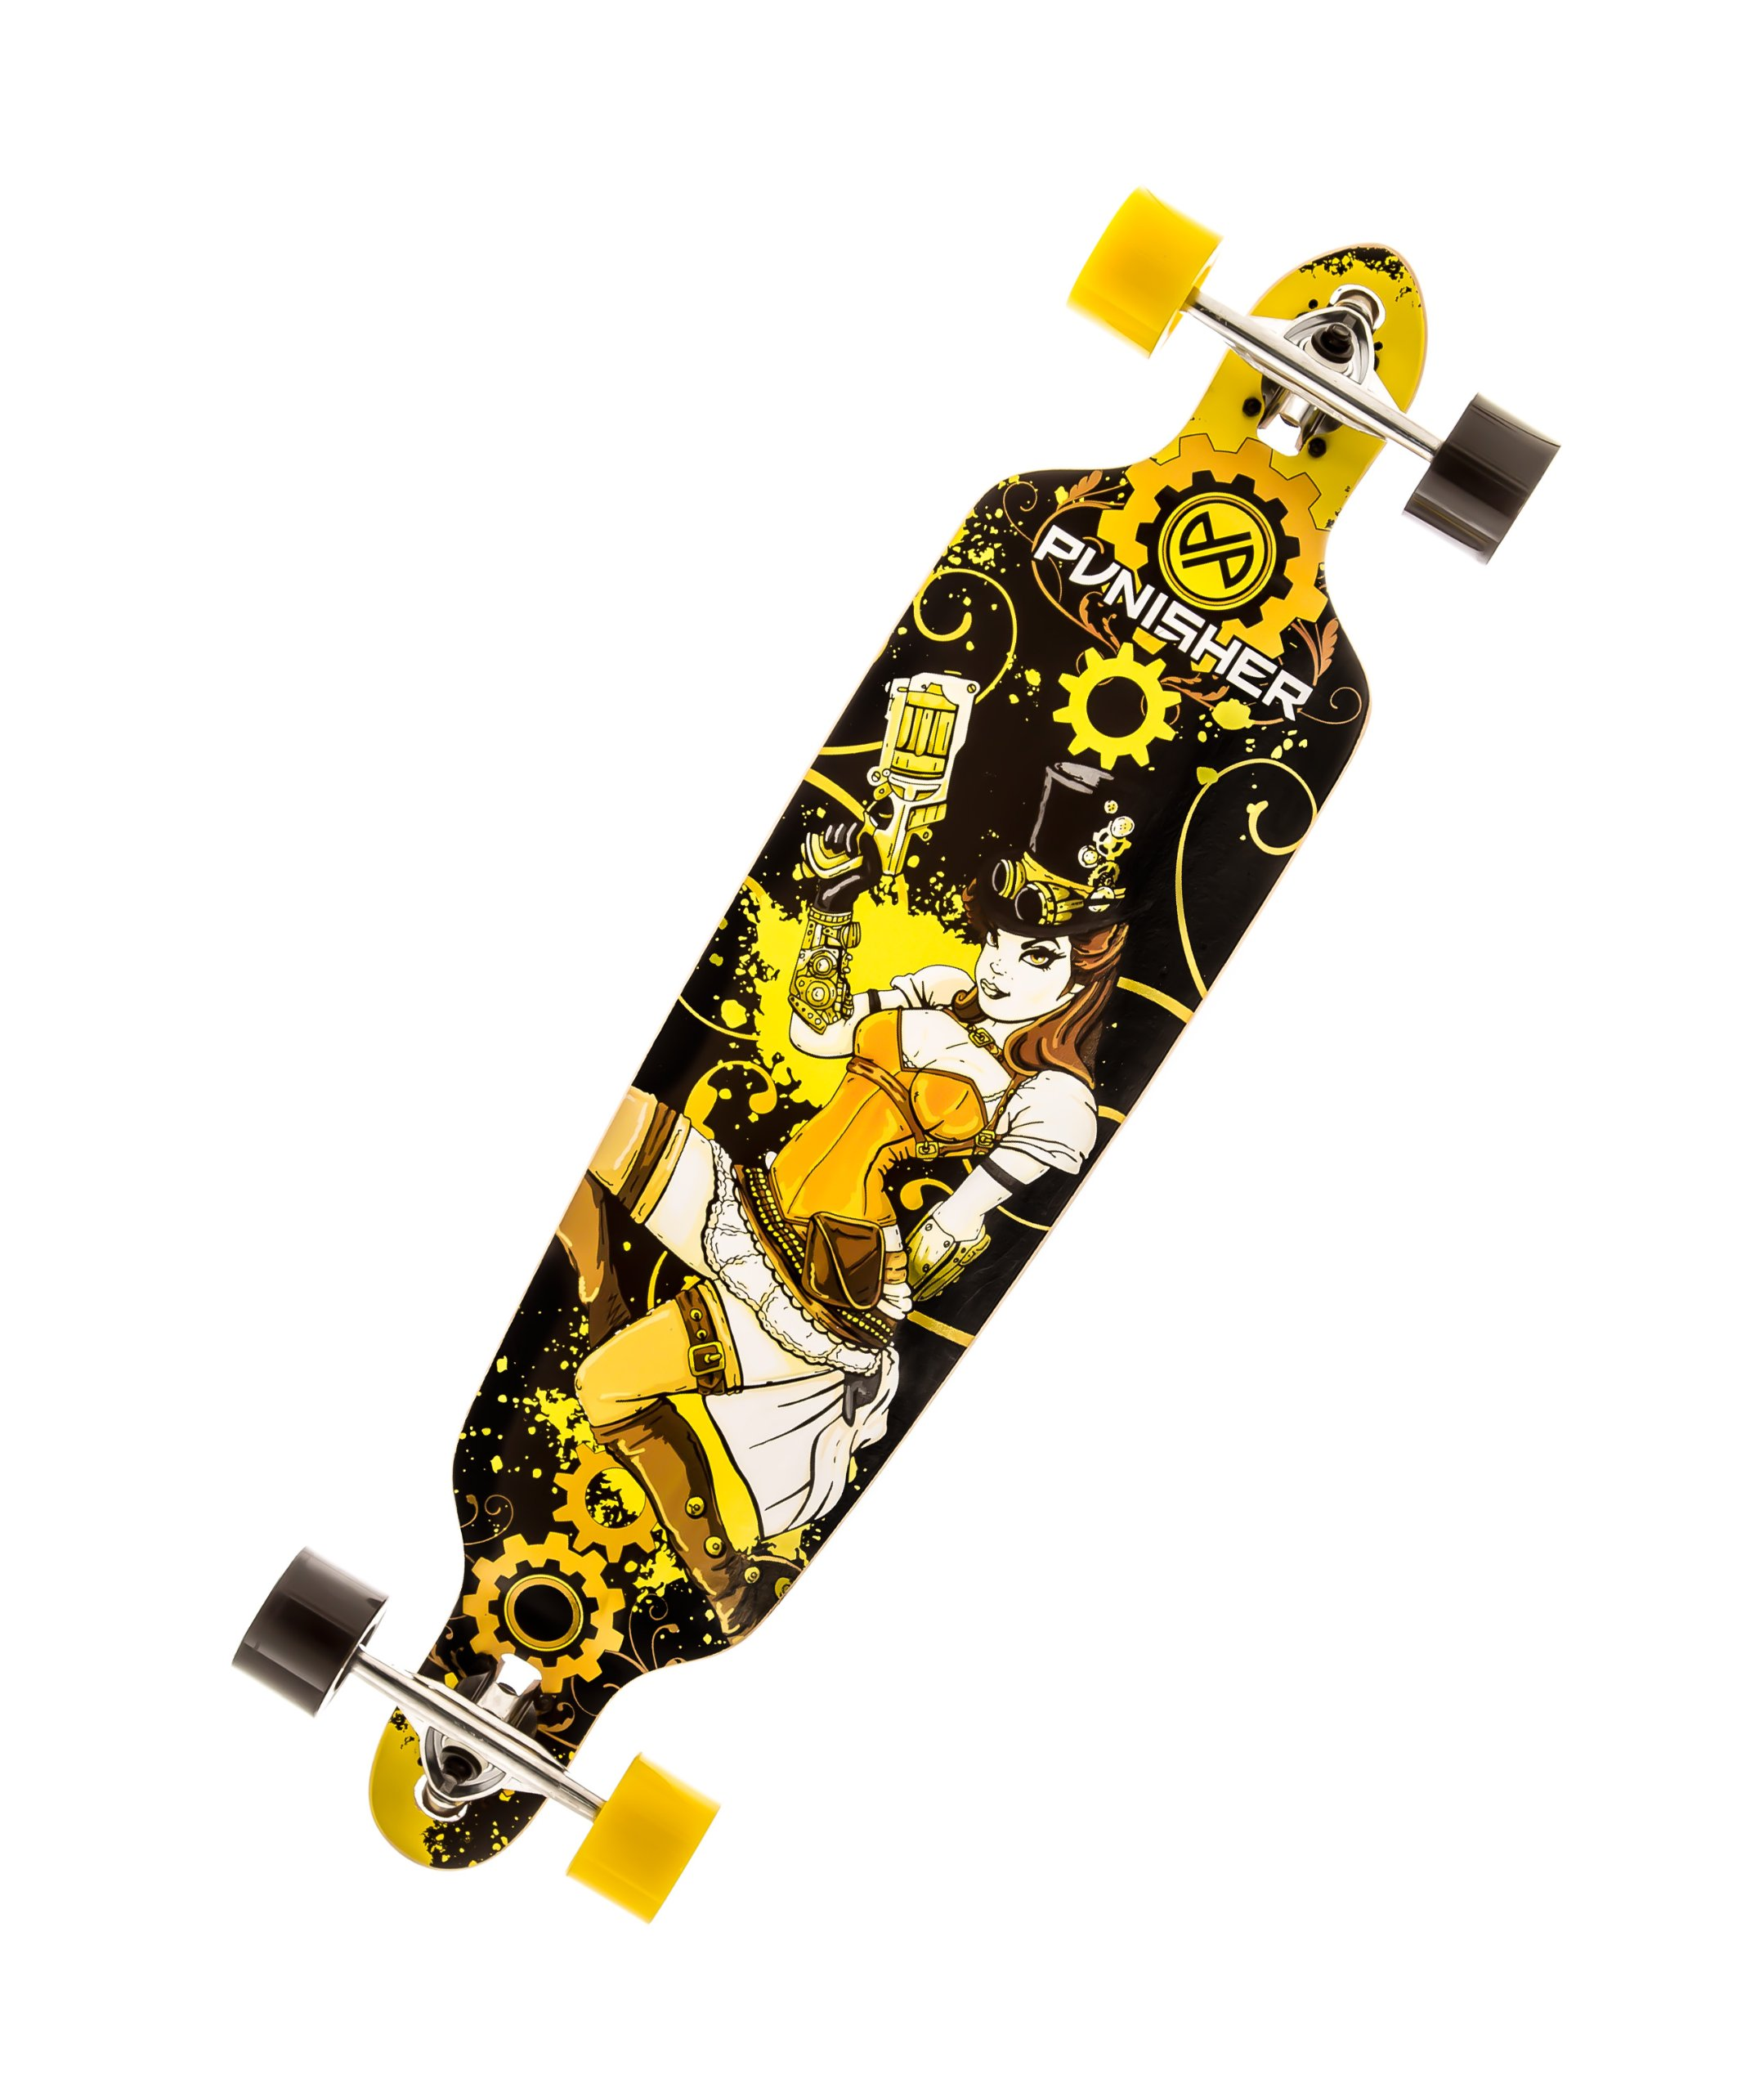 Punisher Skateboards Steampunk Drop-Through Canadian Maple Longboard Skateboard with Concave Deck, Yellow/Black, 40-Inch by Punisher Skateboards